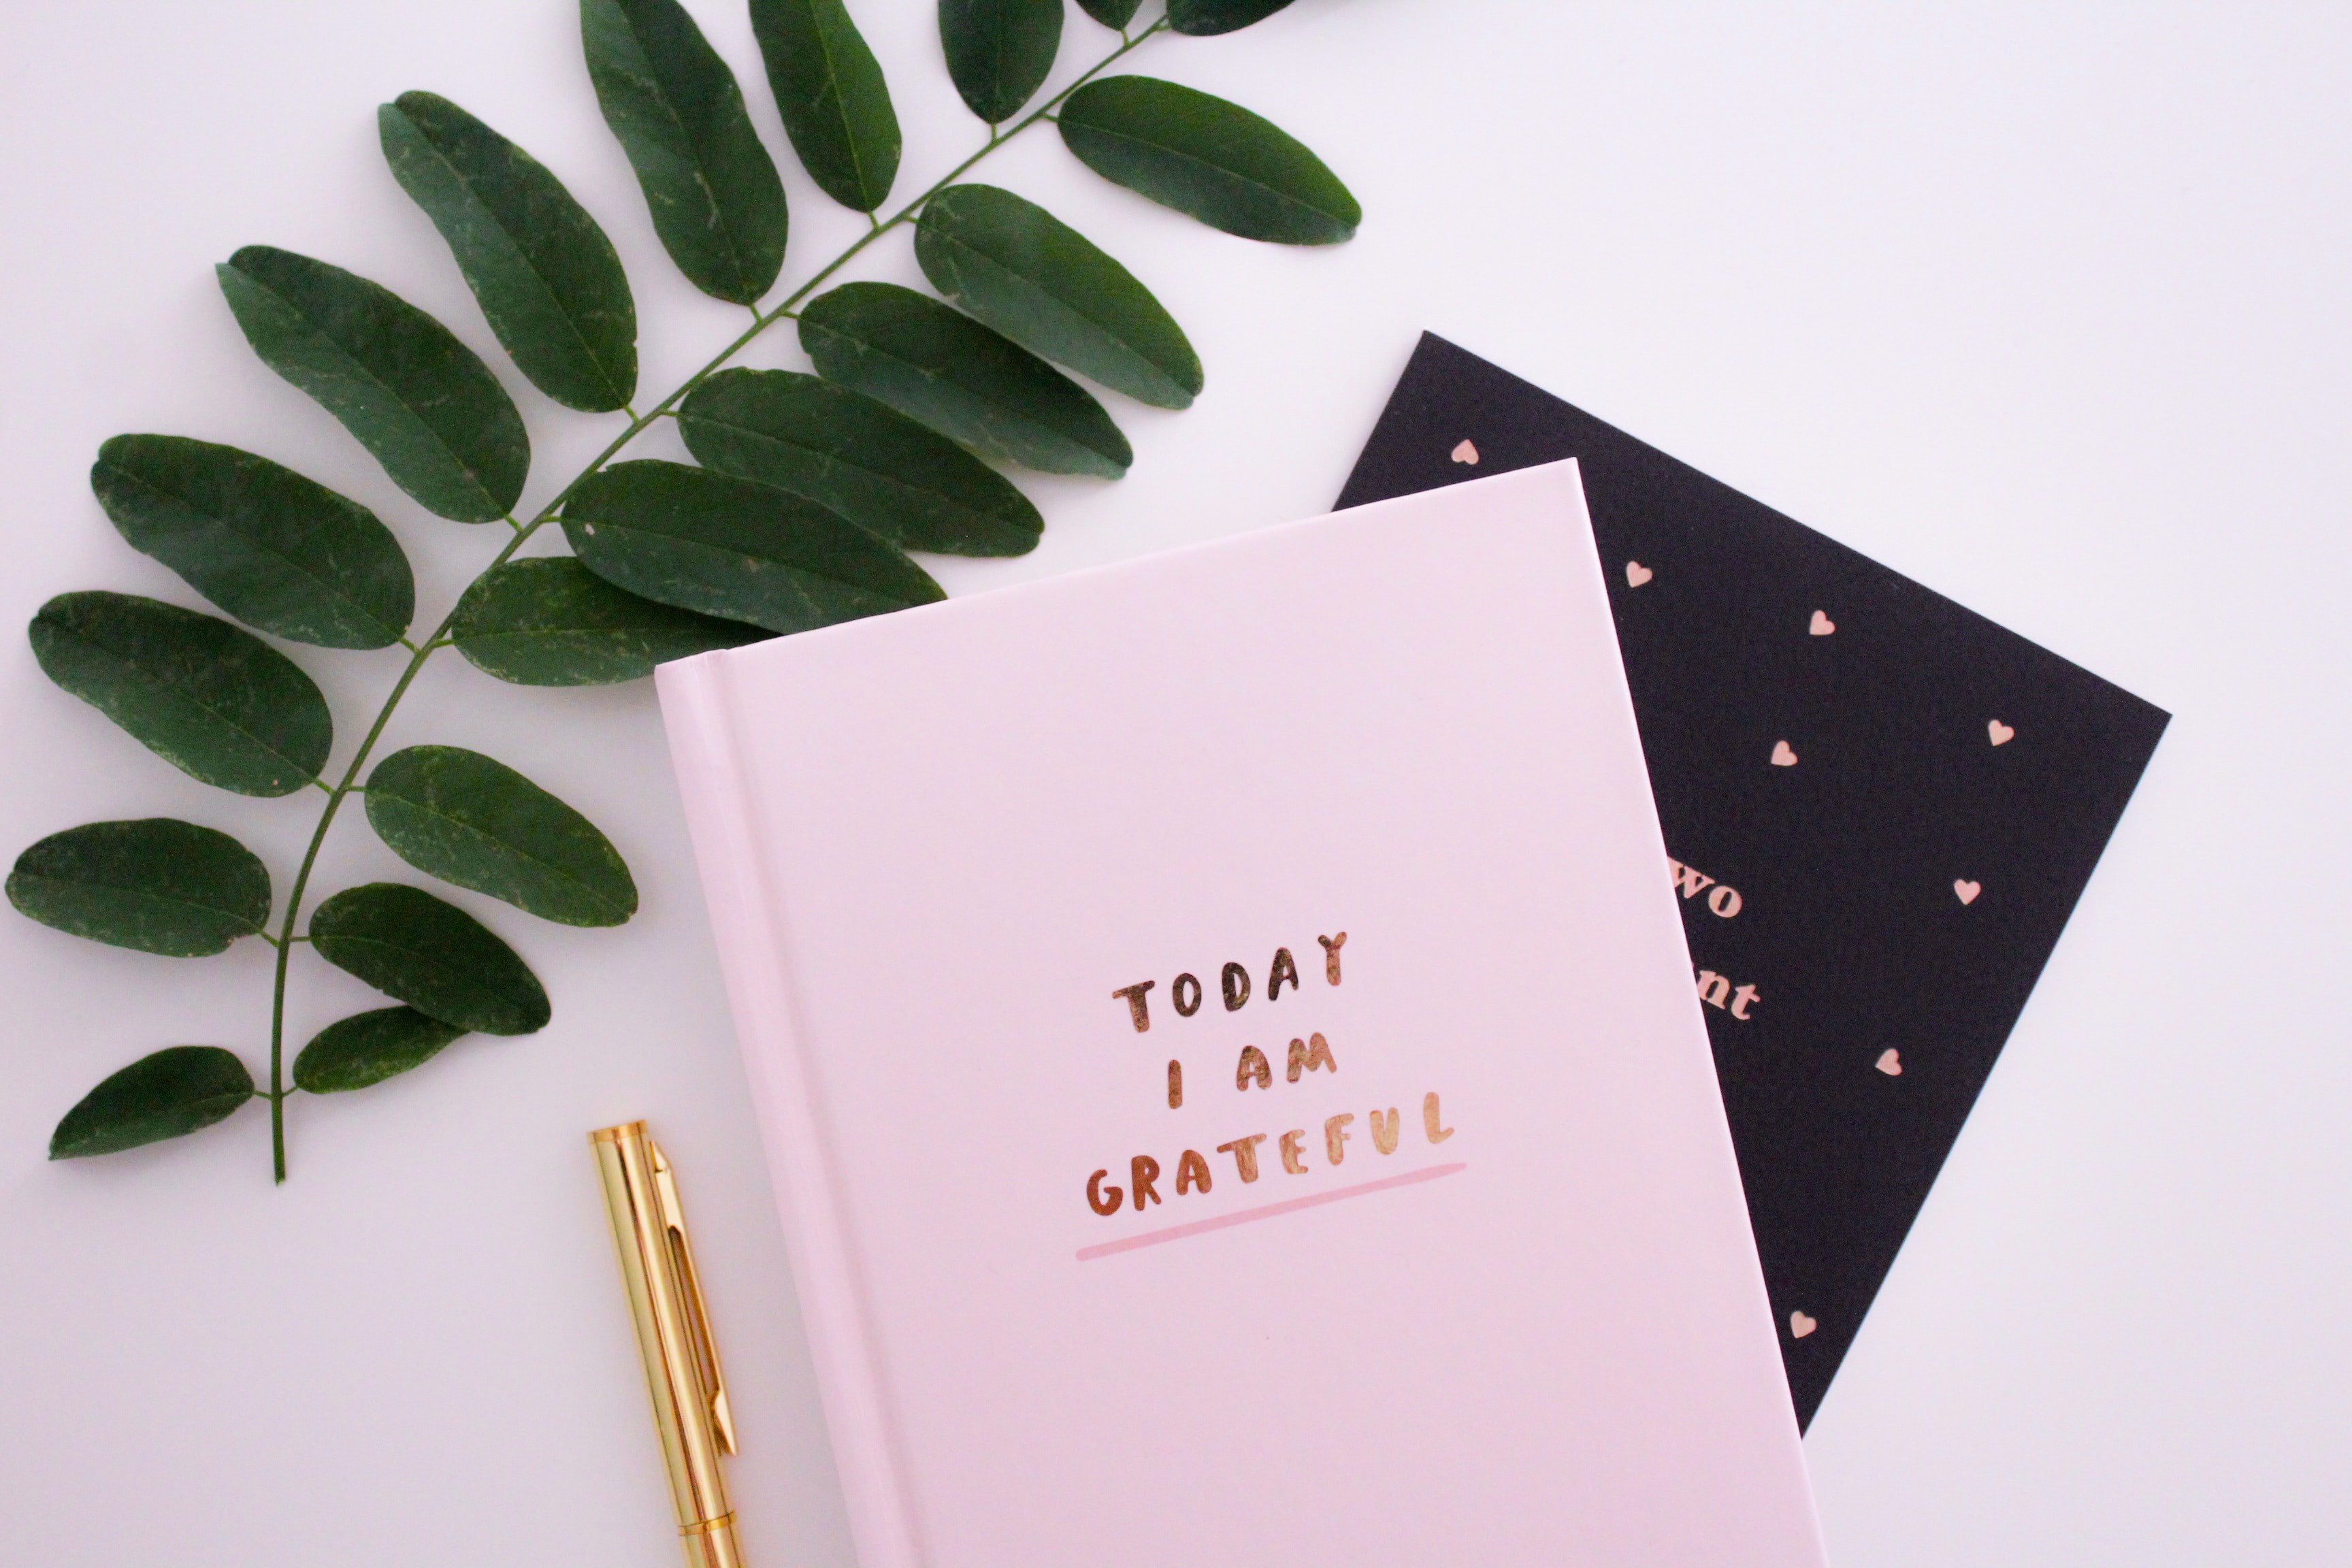 """Photo of a journal that says """"Today I am Grateful"""" on the cover"""